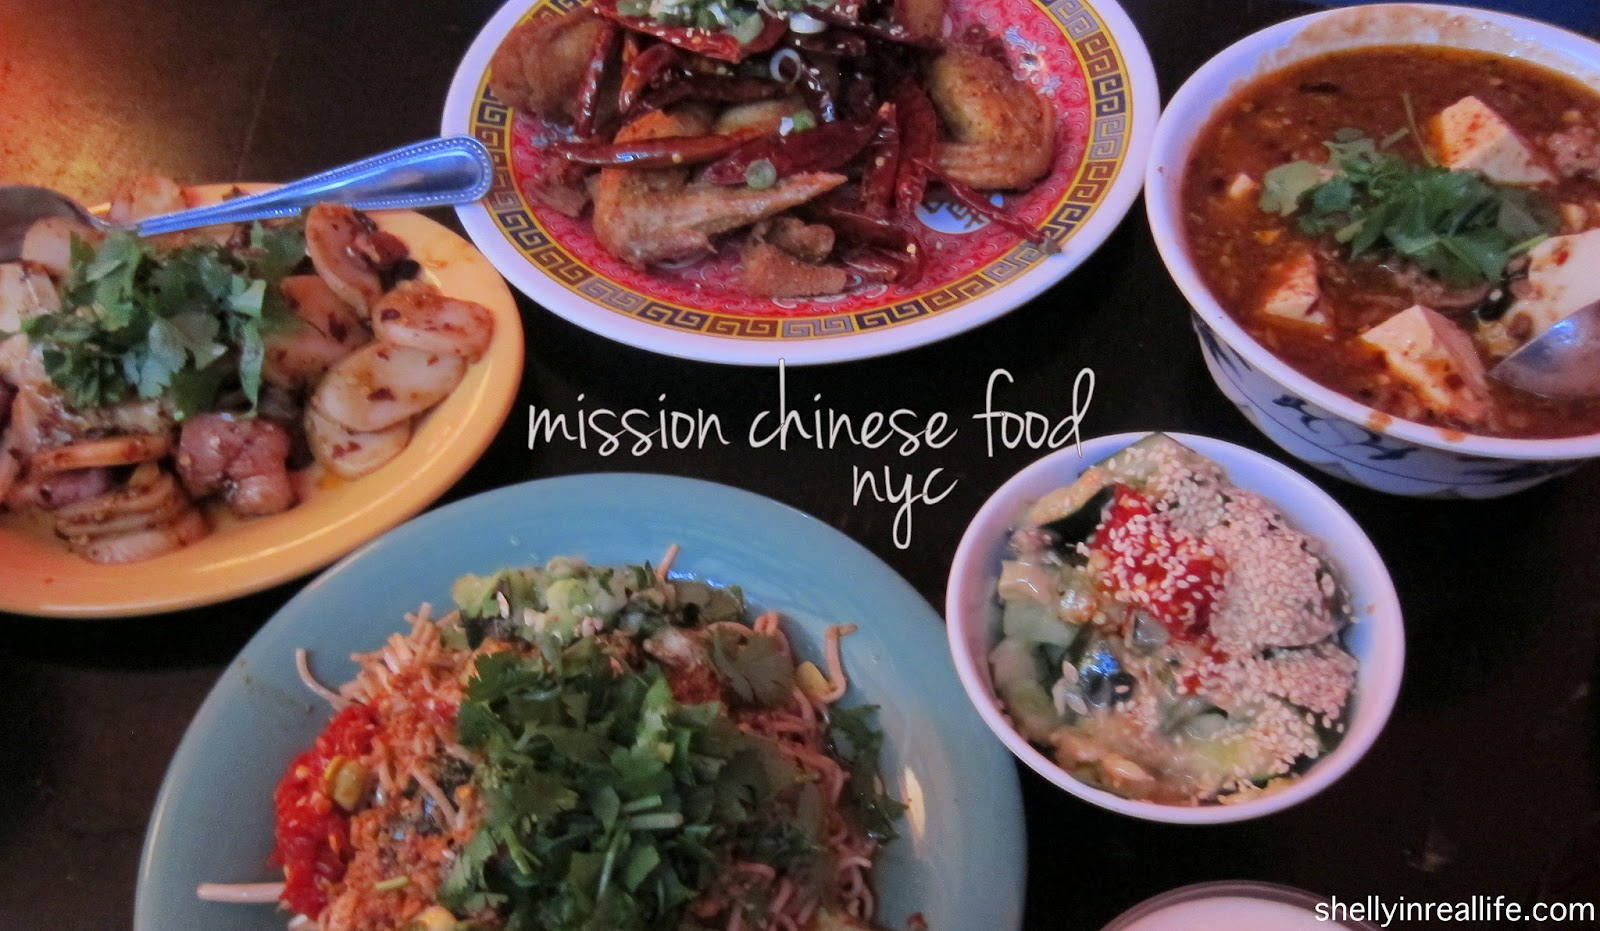 Nyc mission chinese food so overrated shelly in real life for Accord asian cuisine nyc